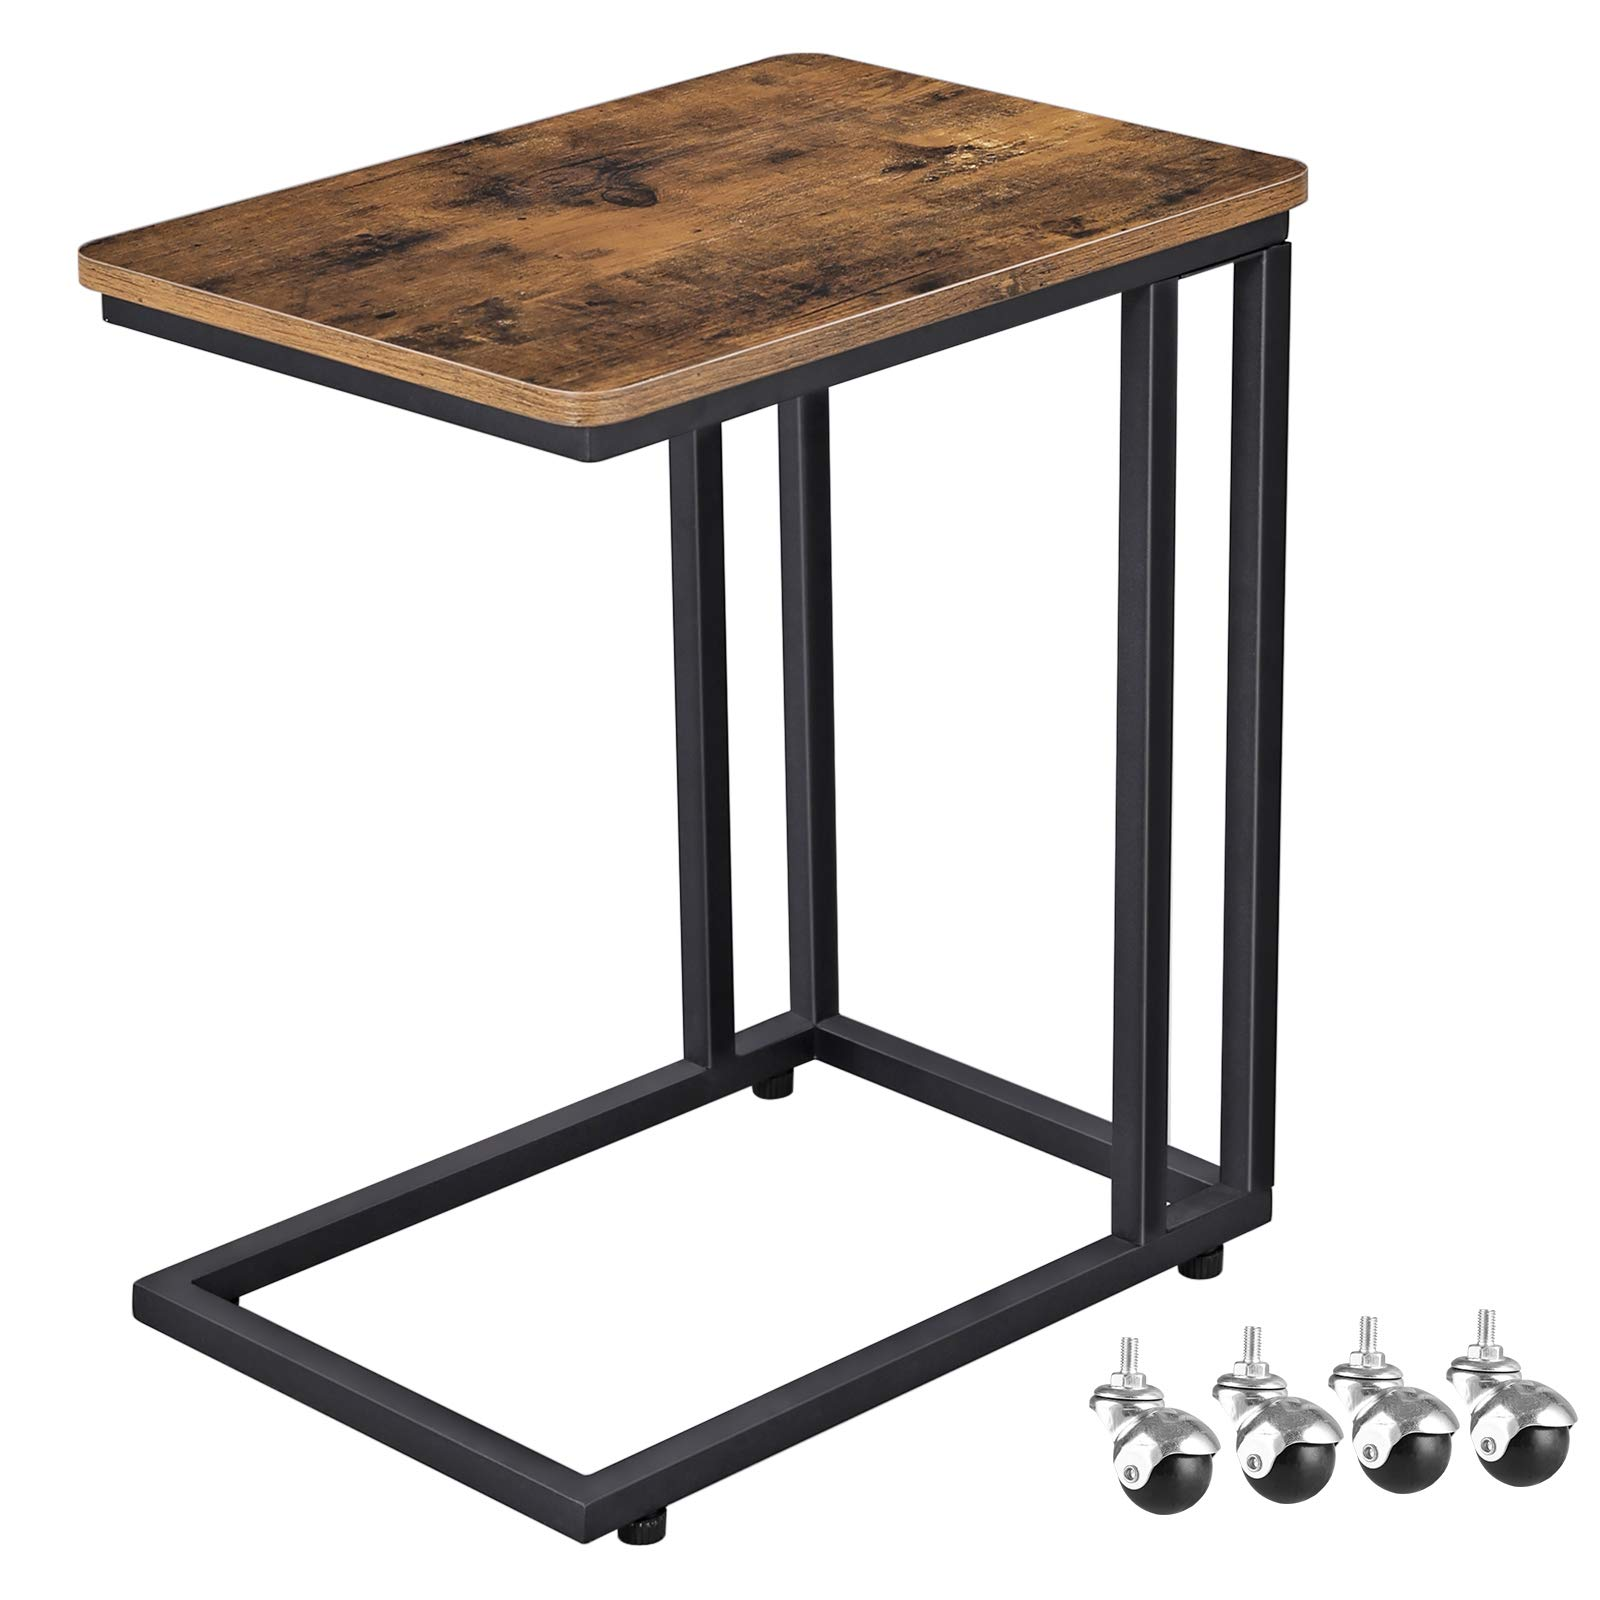 VASAGLE Industrial Side Table, Mobile Snack Table for Coffee Laptop Tablet, Slides Next to Sofa Couch, Wood Look Accent Furniture with Metal Frame ULNT50X by VASAGLE